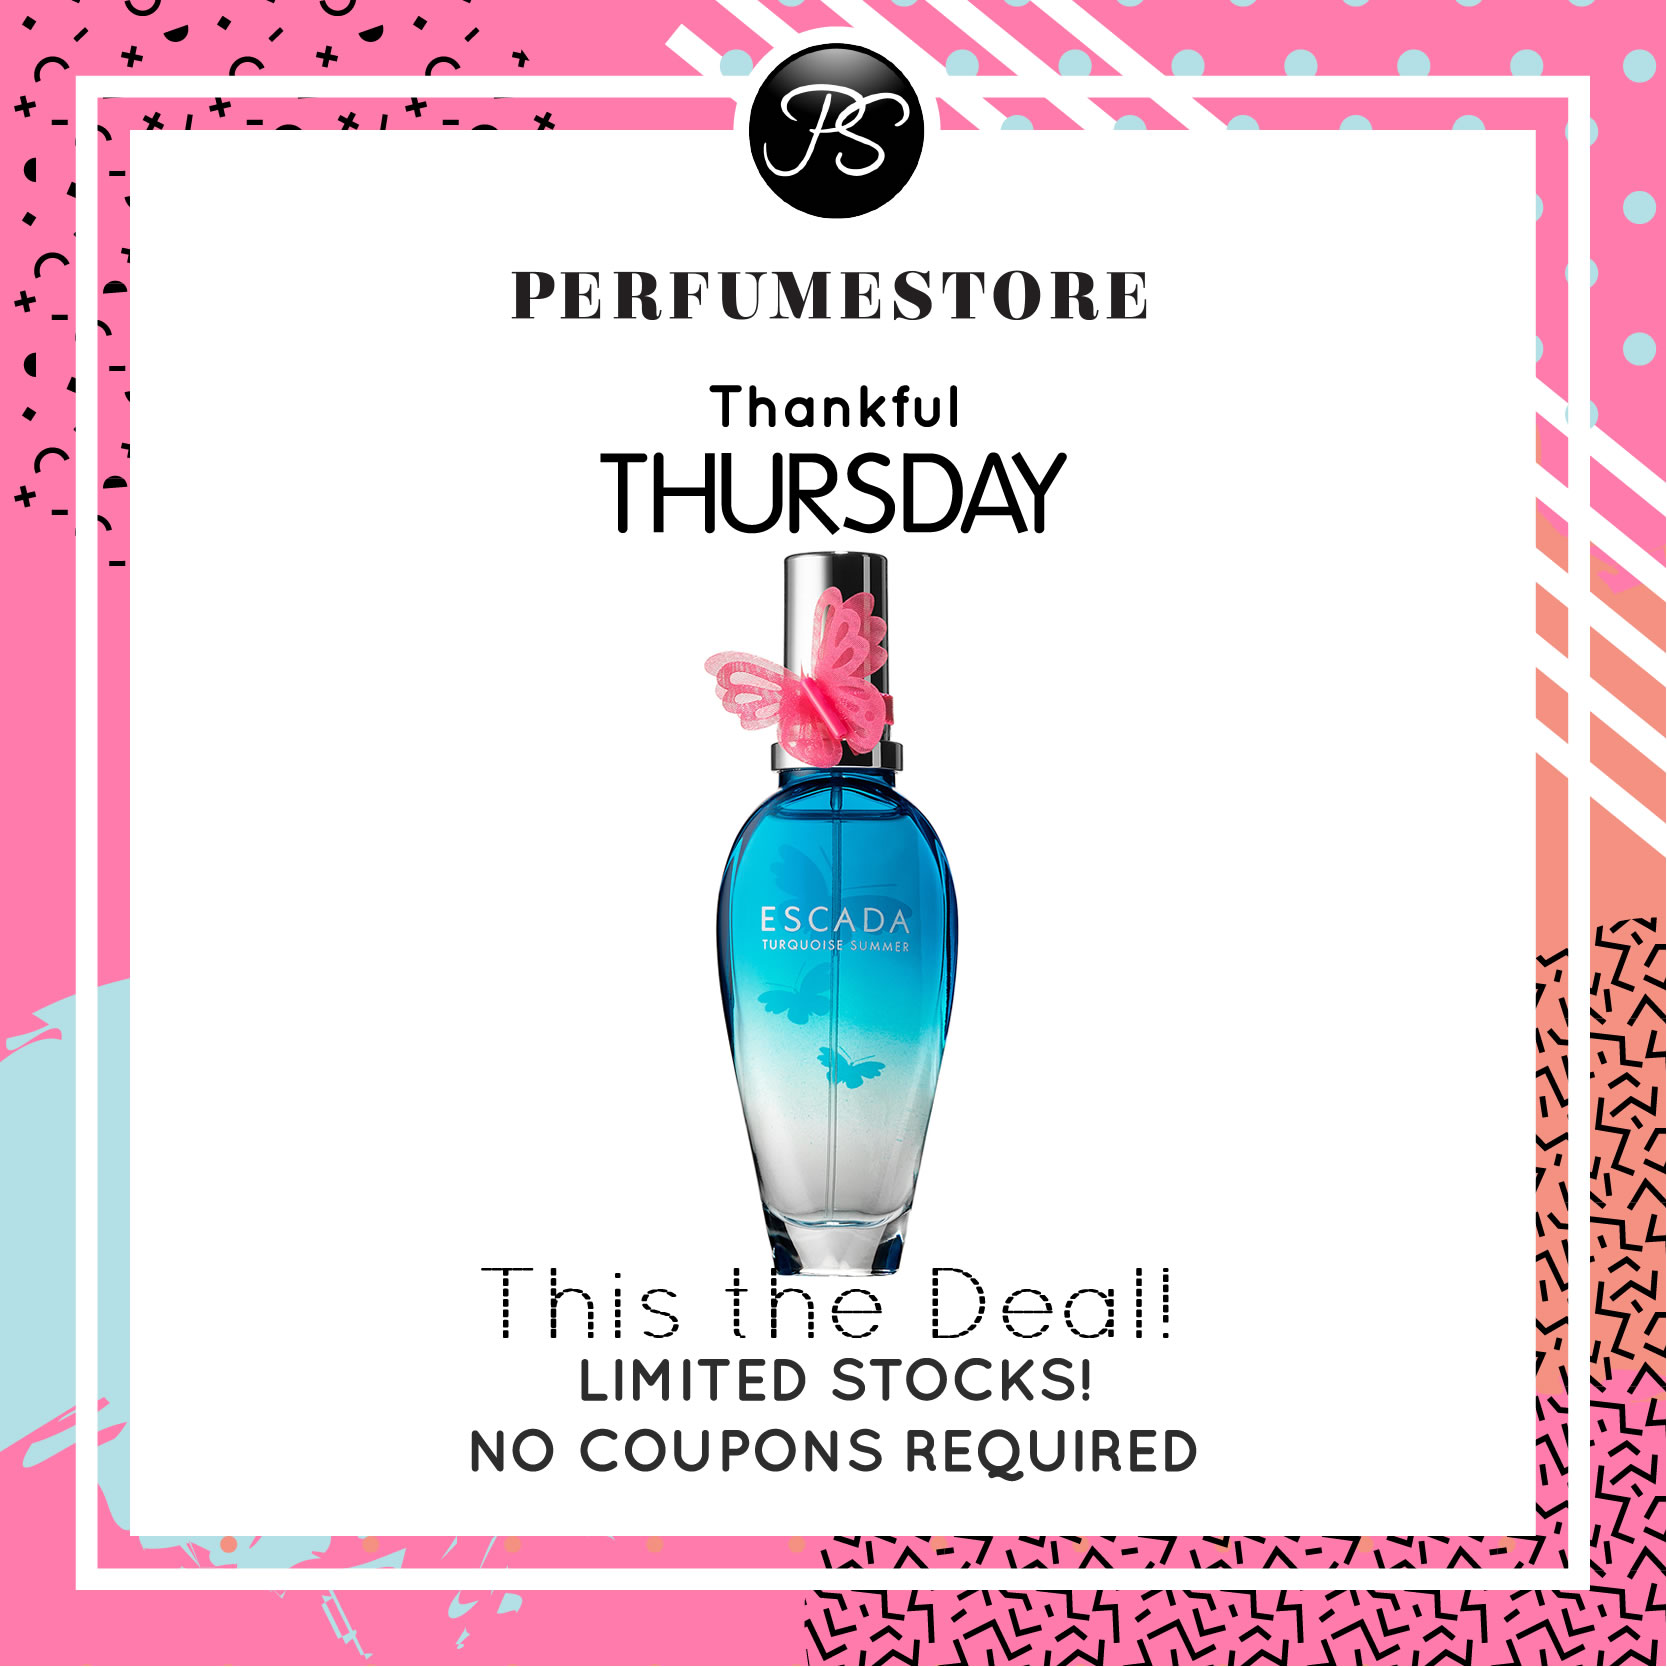 ESCADA TURQUOISE SUMMER LIMITED EDITION EDT FOR WOMEN 100ML [THANKFUL THURSDAY SPECIAL]